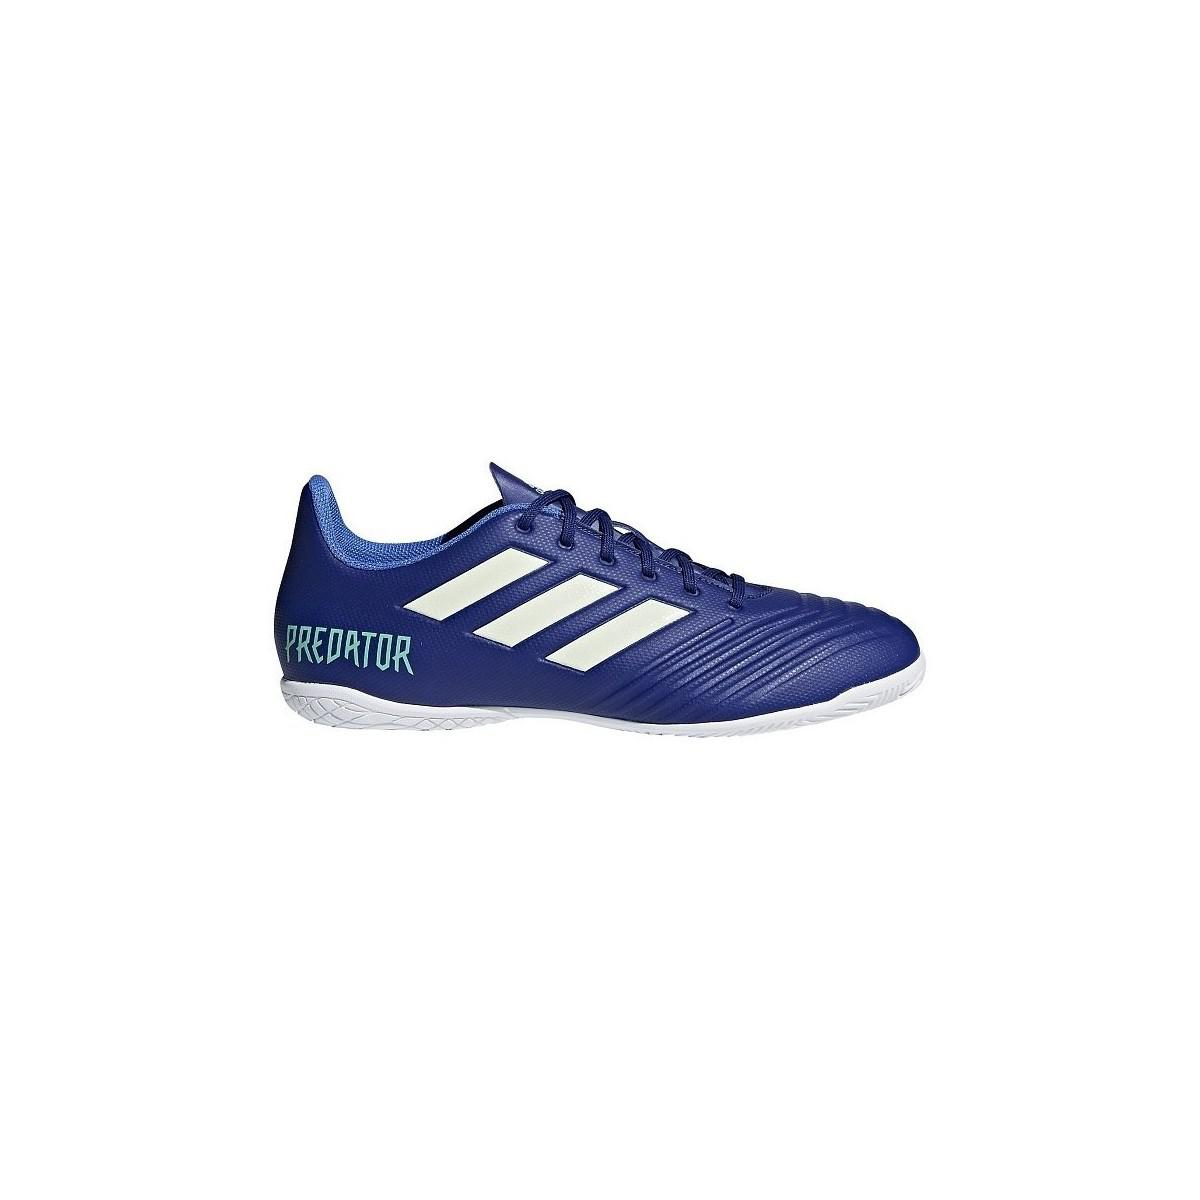 7a8d84c81 View fullscreen  new arrival 45a69 2f1a7 adidas Predator Tango 184 In Mens  Football Boots In Blue in